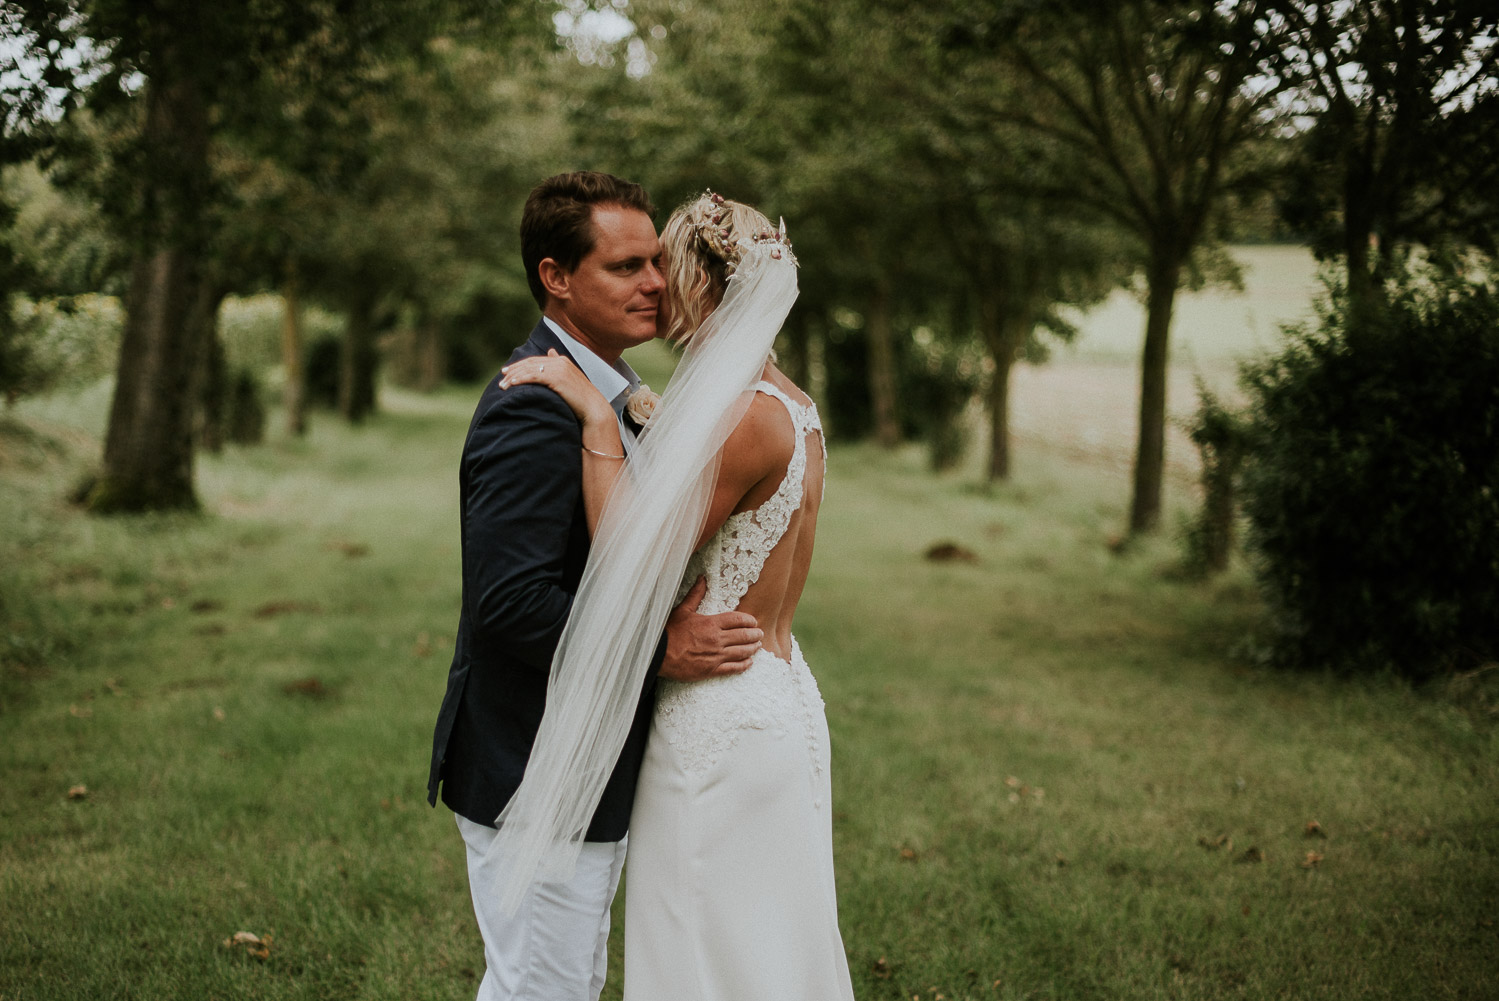 chateau_la_commanderie_mirepoix__wedding_katy_webb_photography_france_UK129